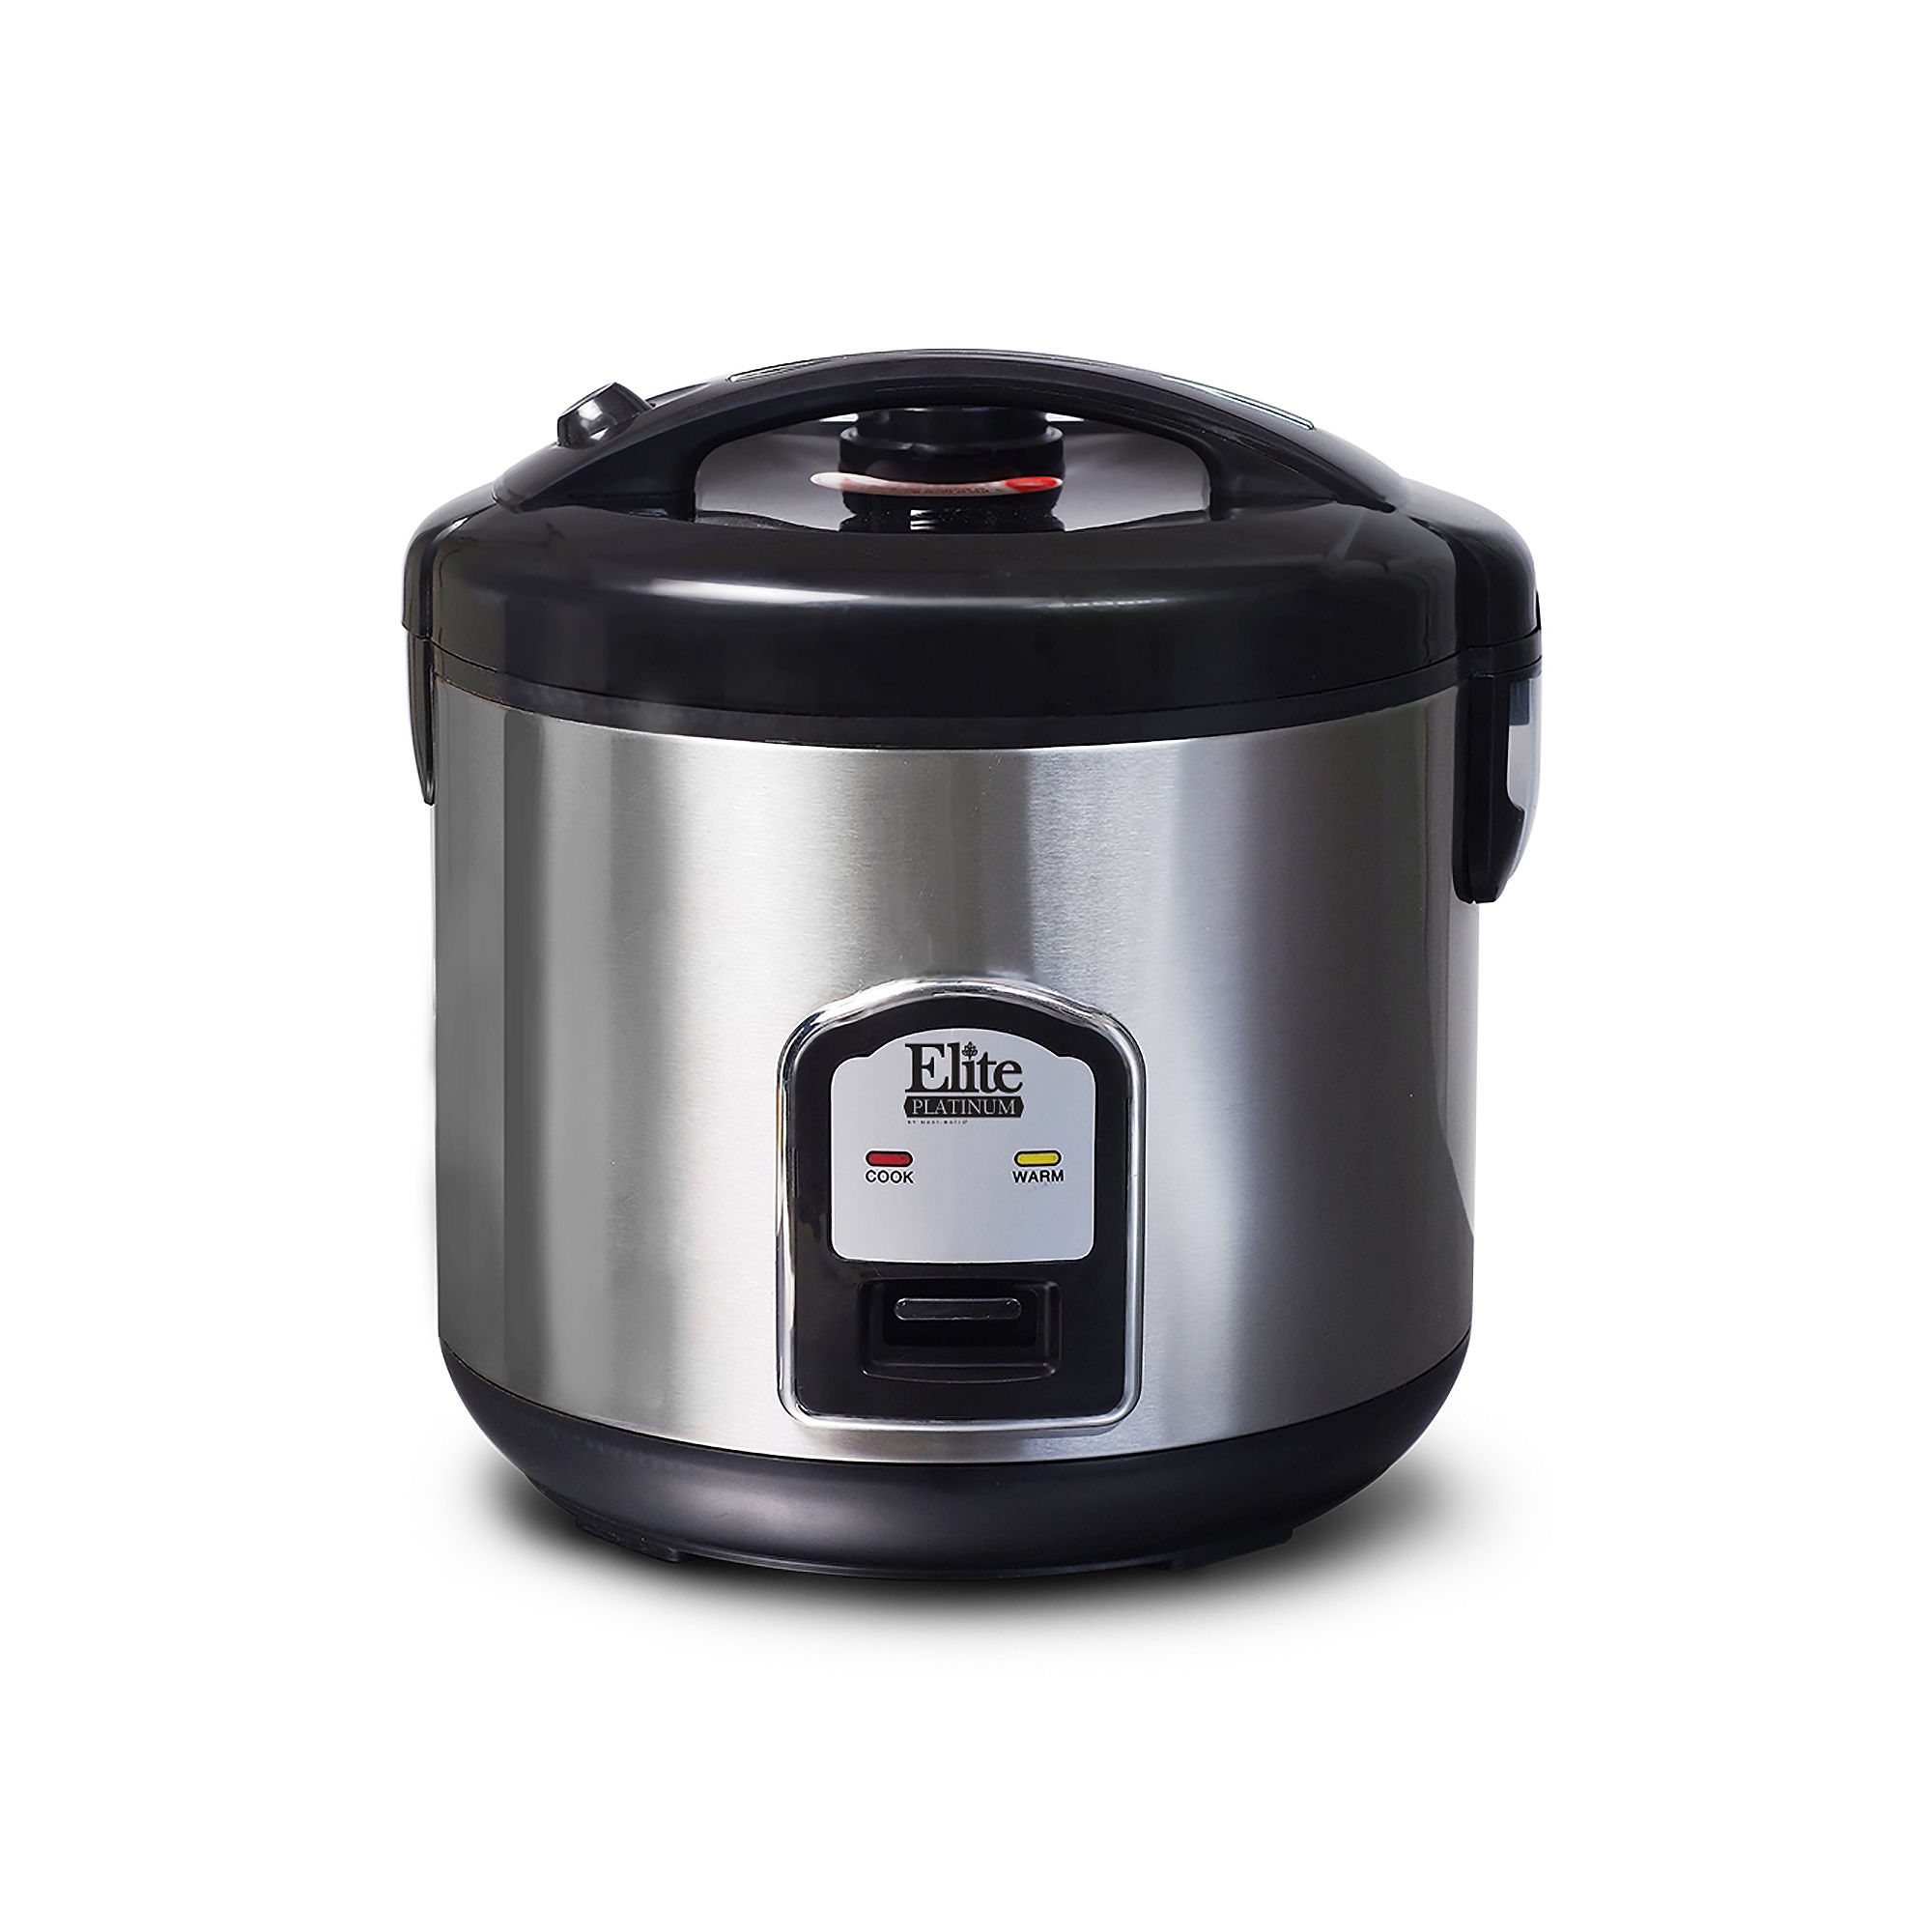 Elite Drc-1000b Rice Cooker